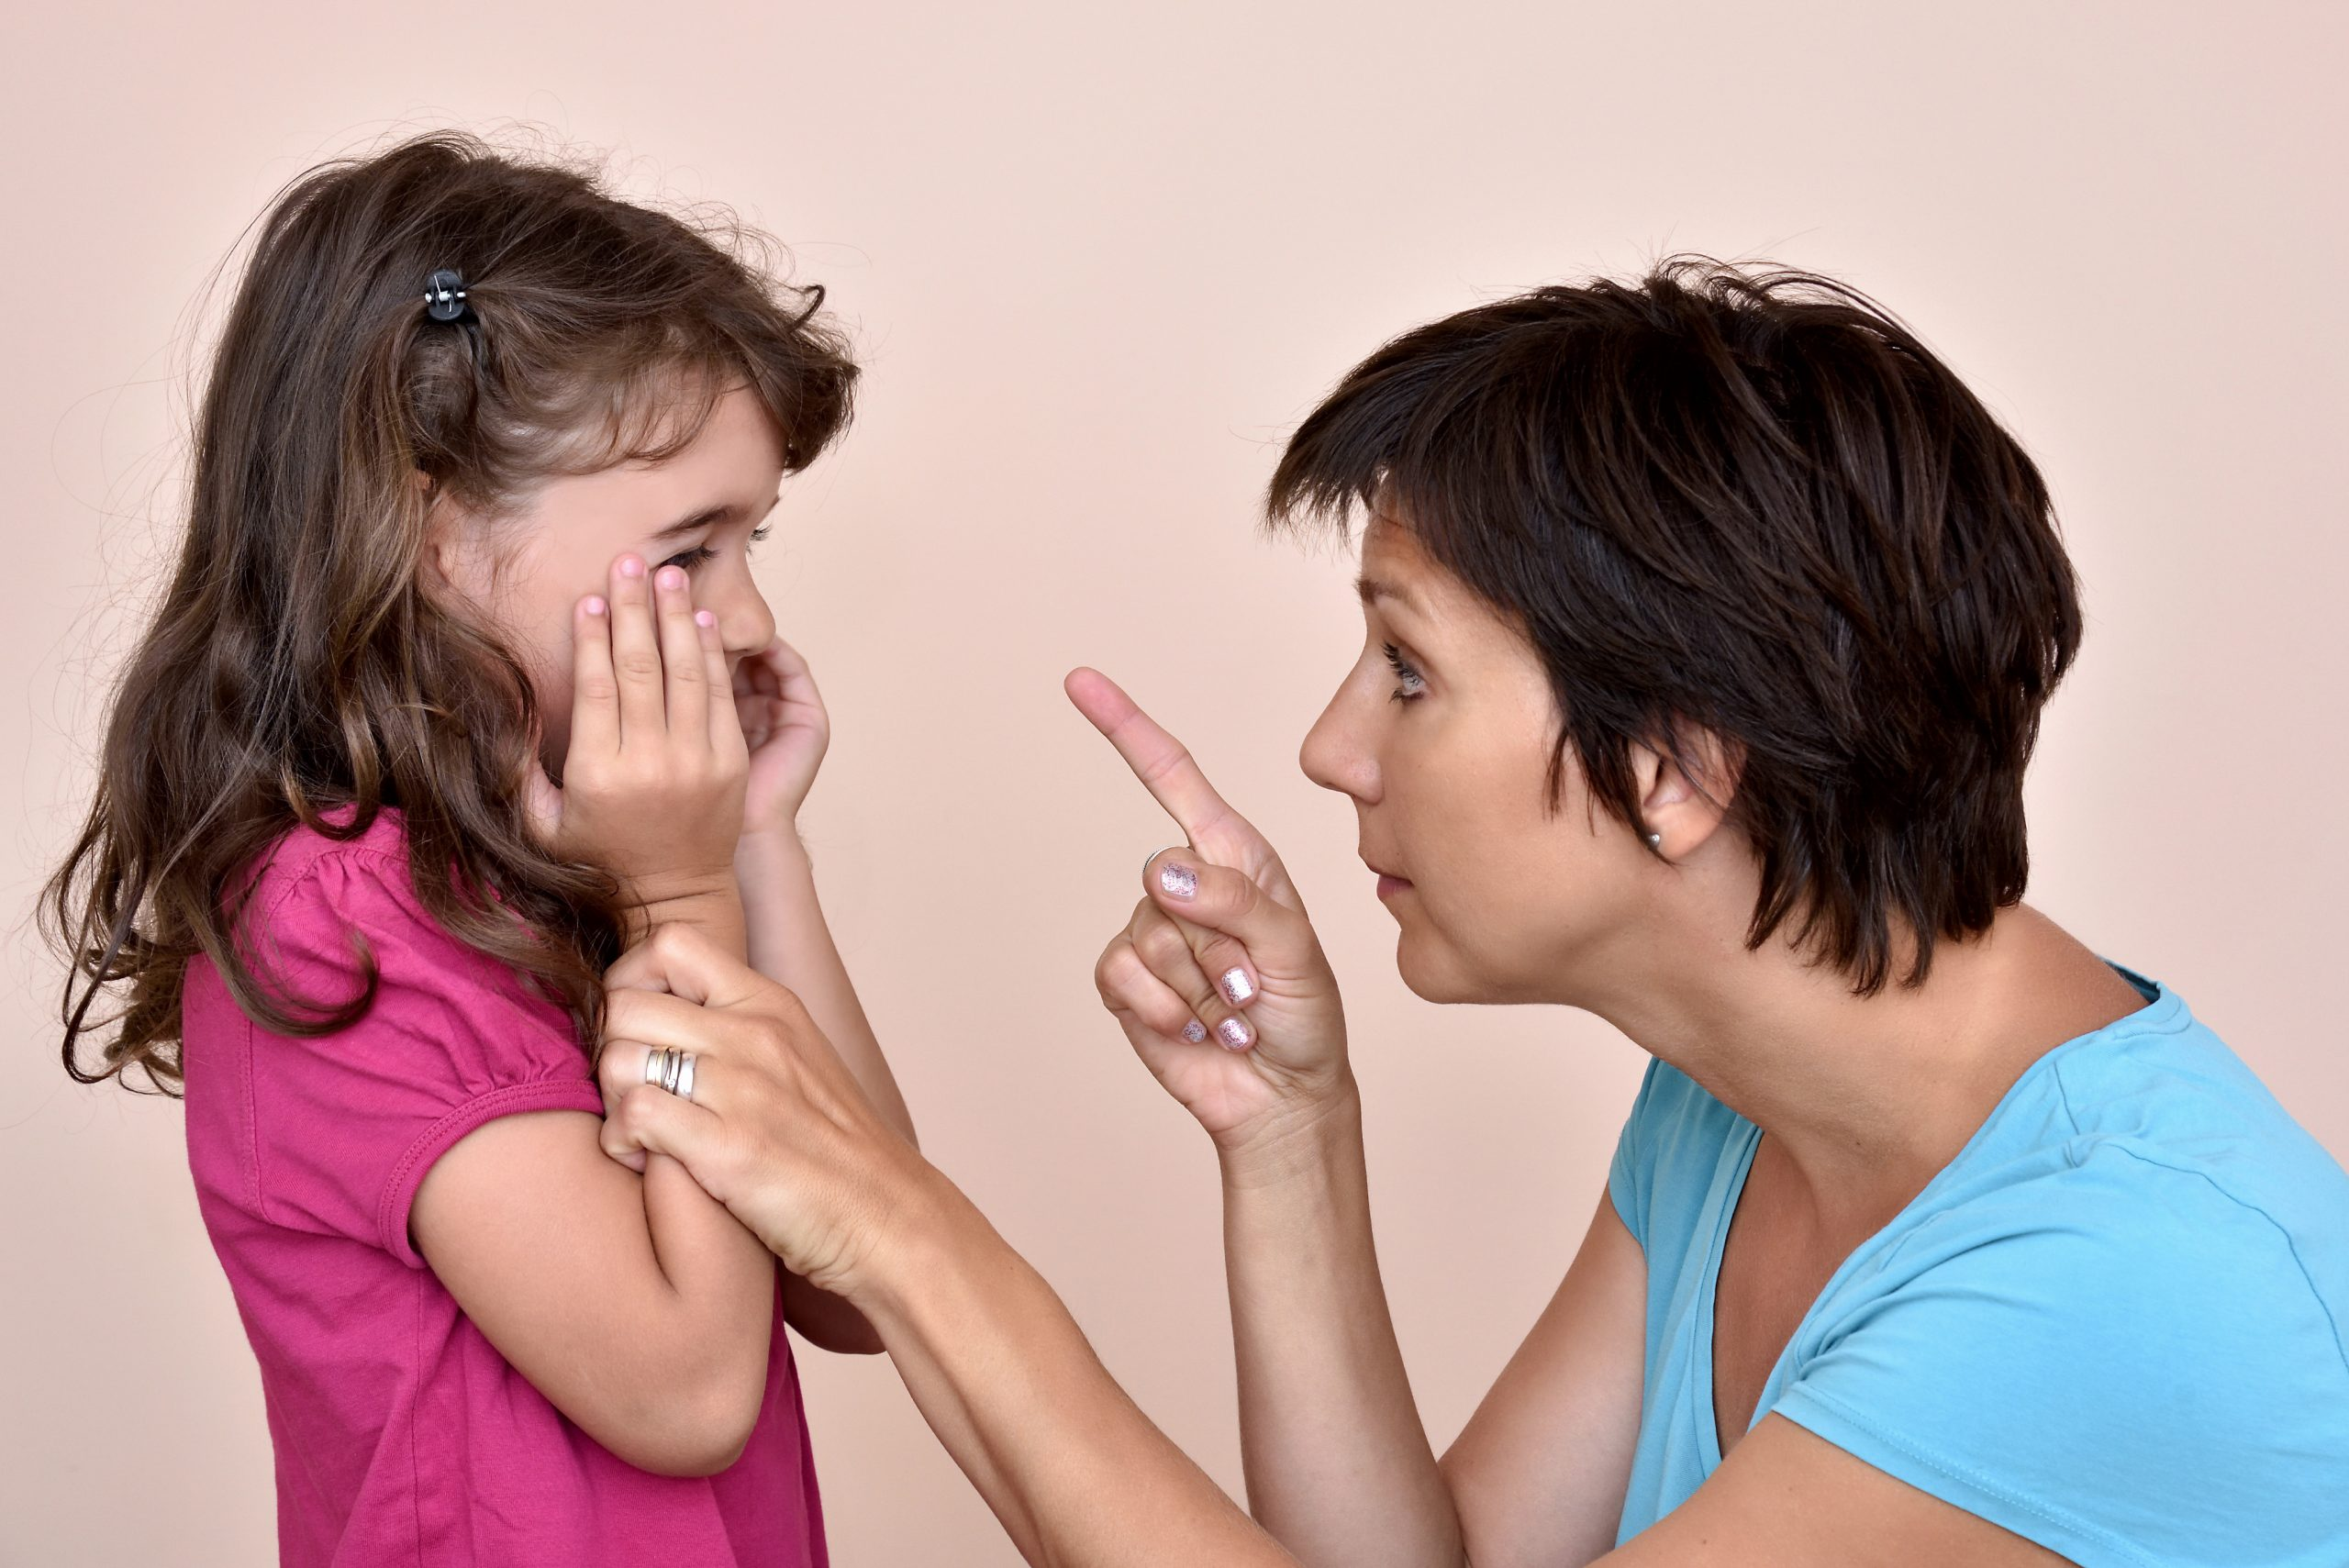 Mother scolding scared little girl.